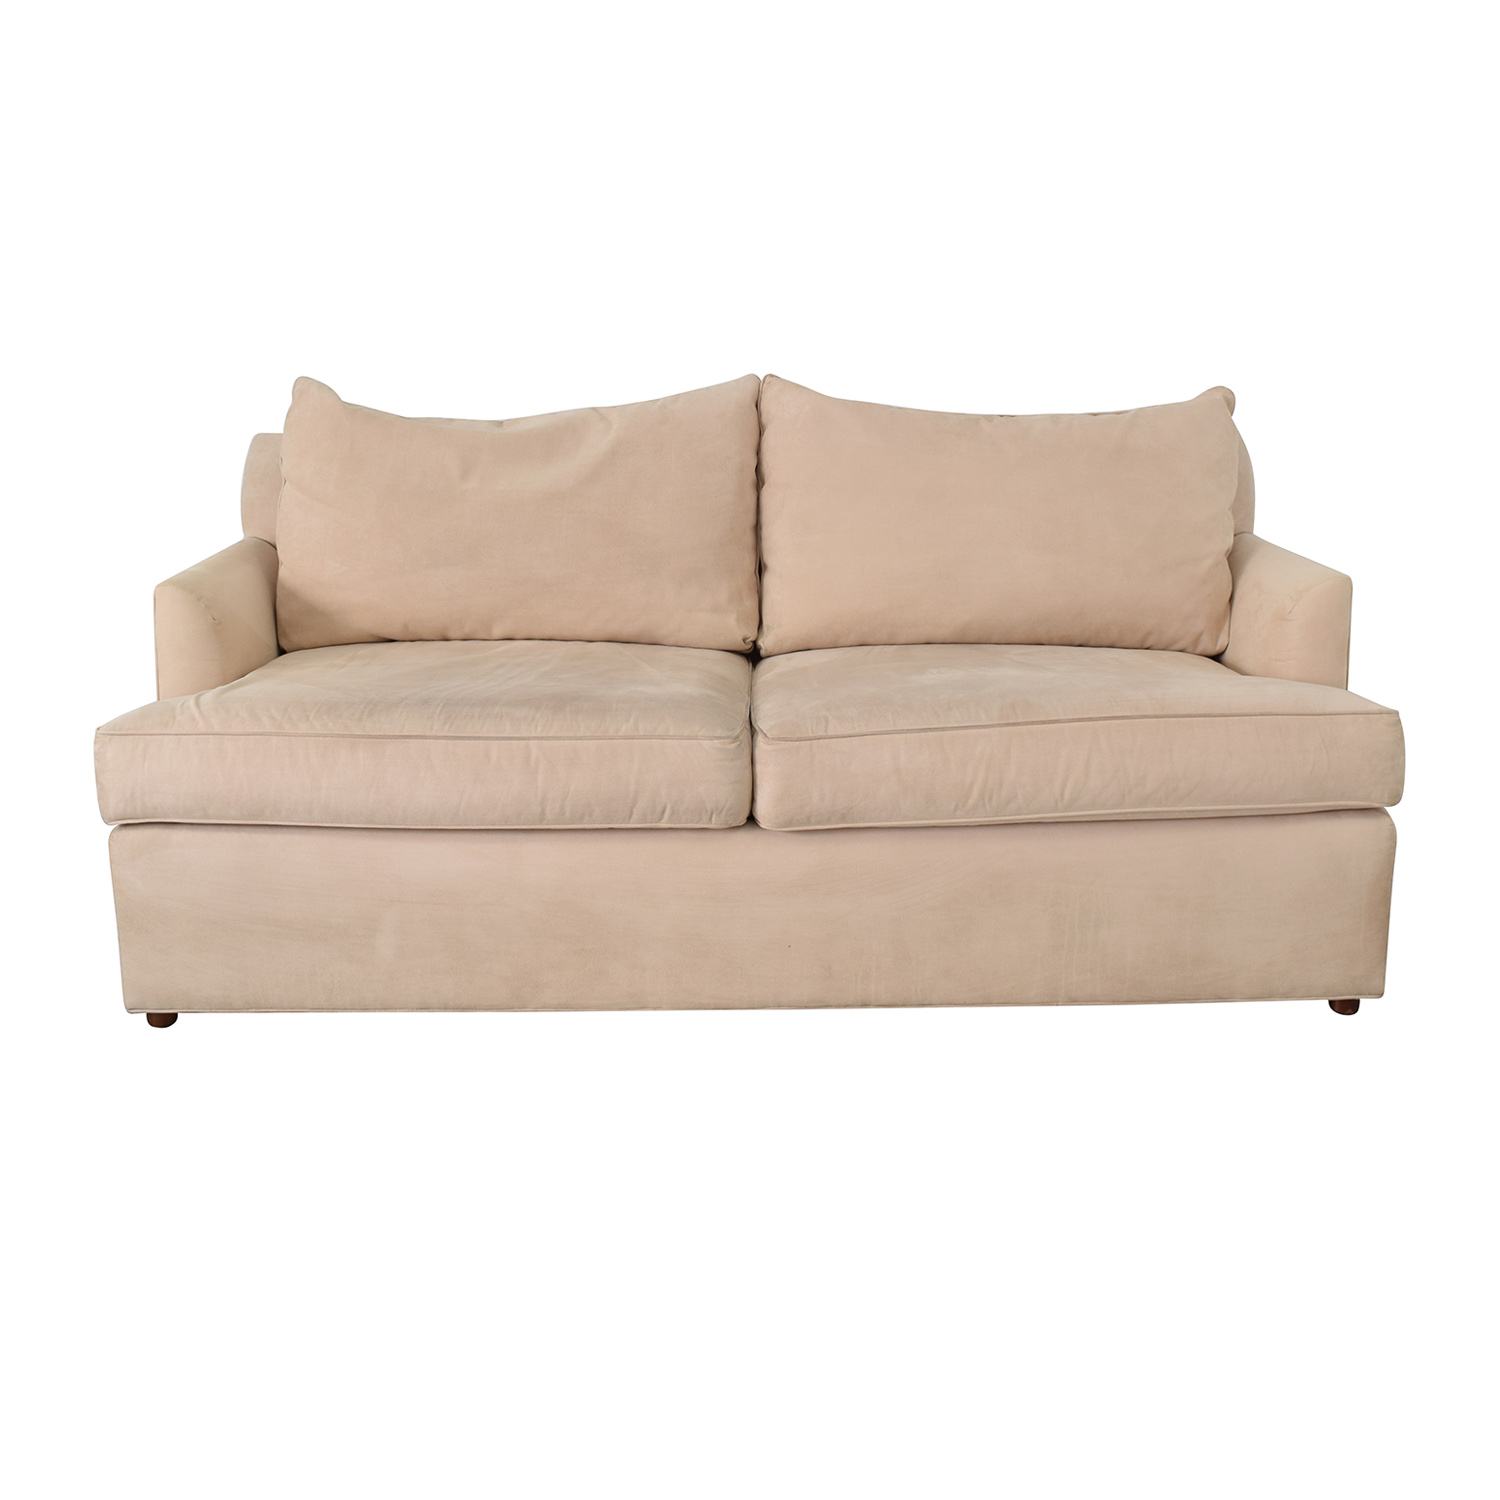 Ethan Allen Ethan Allen Beige Two-Cushion Sofa used